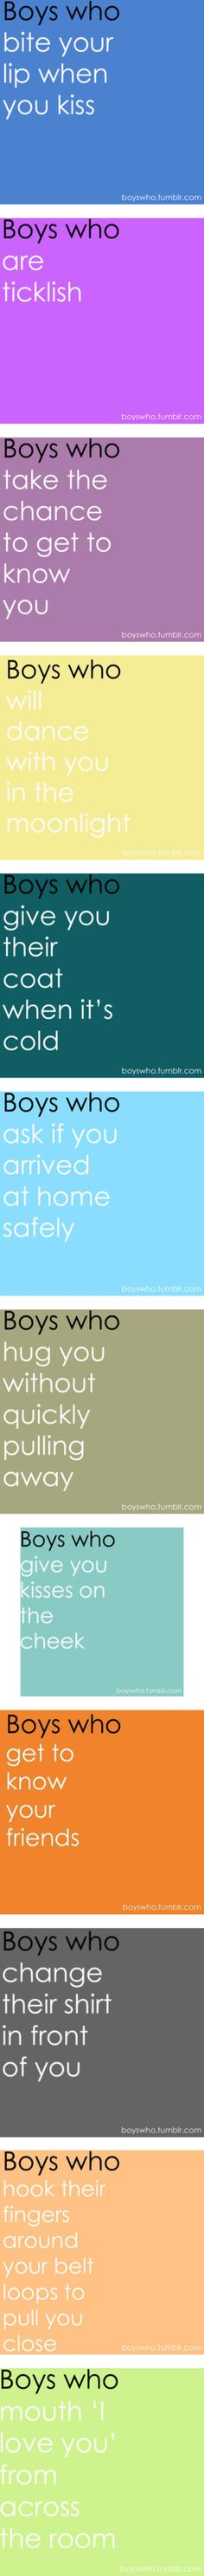 I like Boys who... by i-am-the-girl-on-fire on Polyvore featuring boys who, boys who..., quotes, words, text, boys, phrases, saying, phrase and pictures